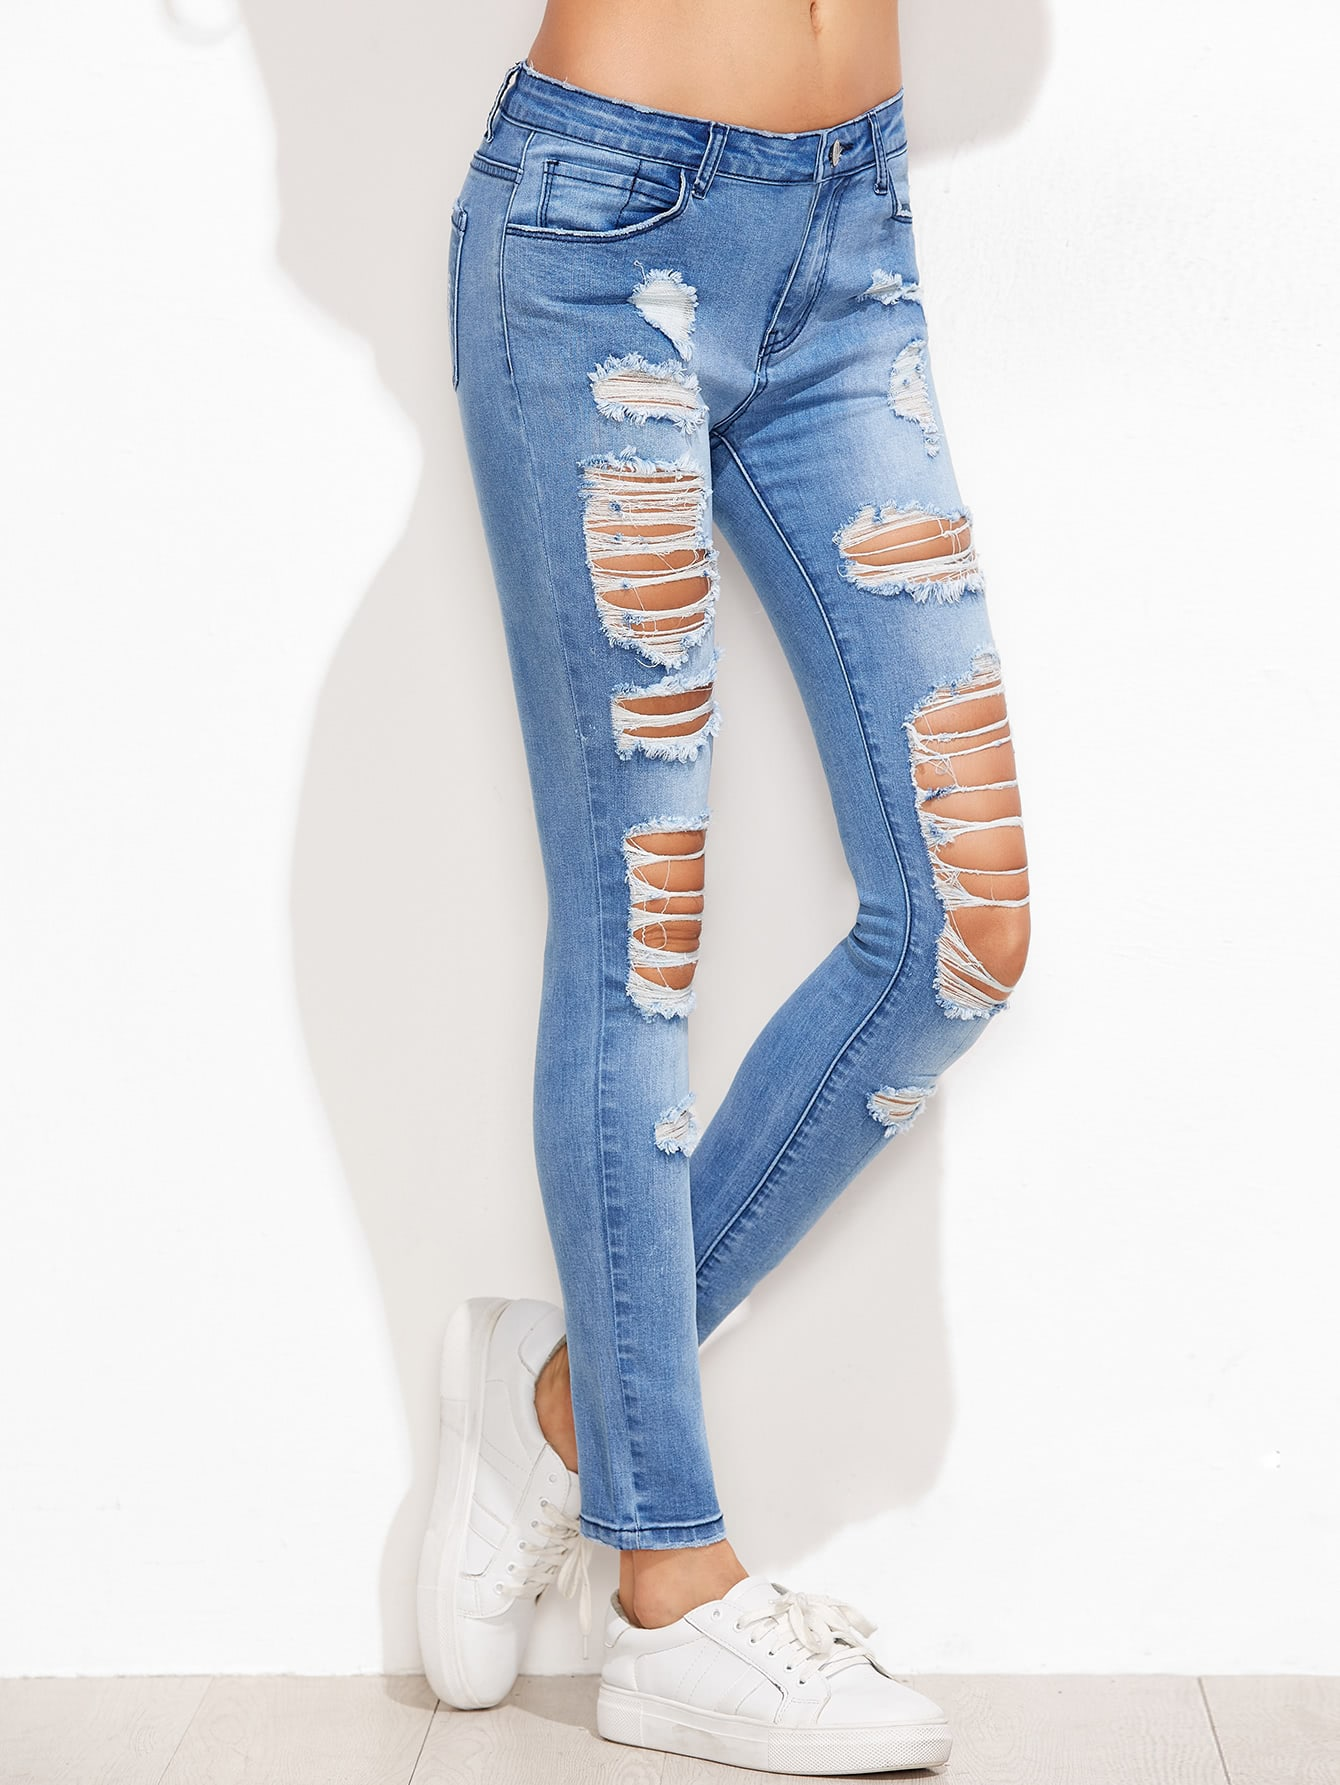 You searched for: bleach skinny jeans! Etsy is the home to thousands of handmade, vintage, and one-of-a-kind products and gifts related to your search. No matter what you're looking for or where you are in the world, our global marketplace of sellers can help you .